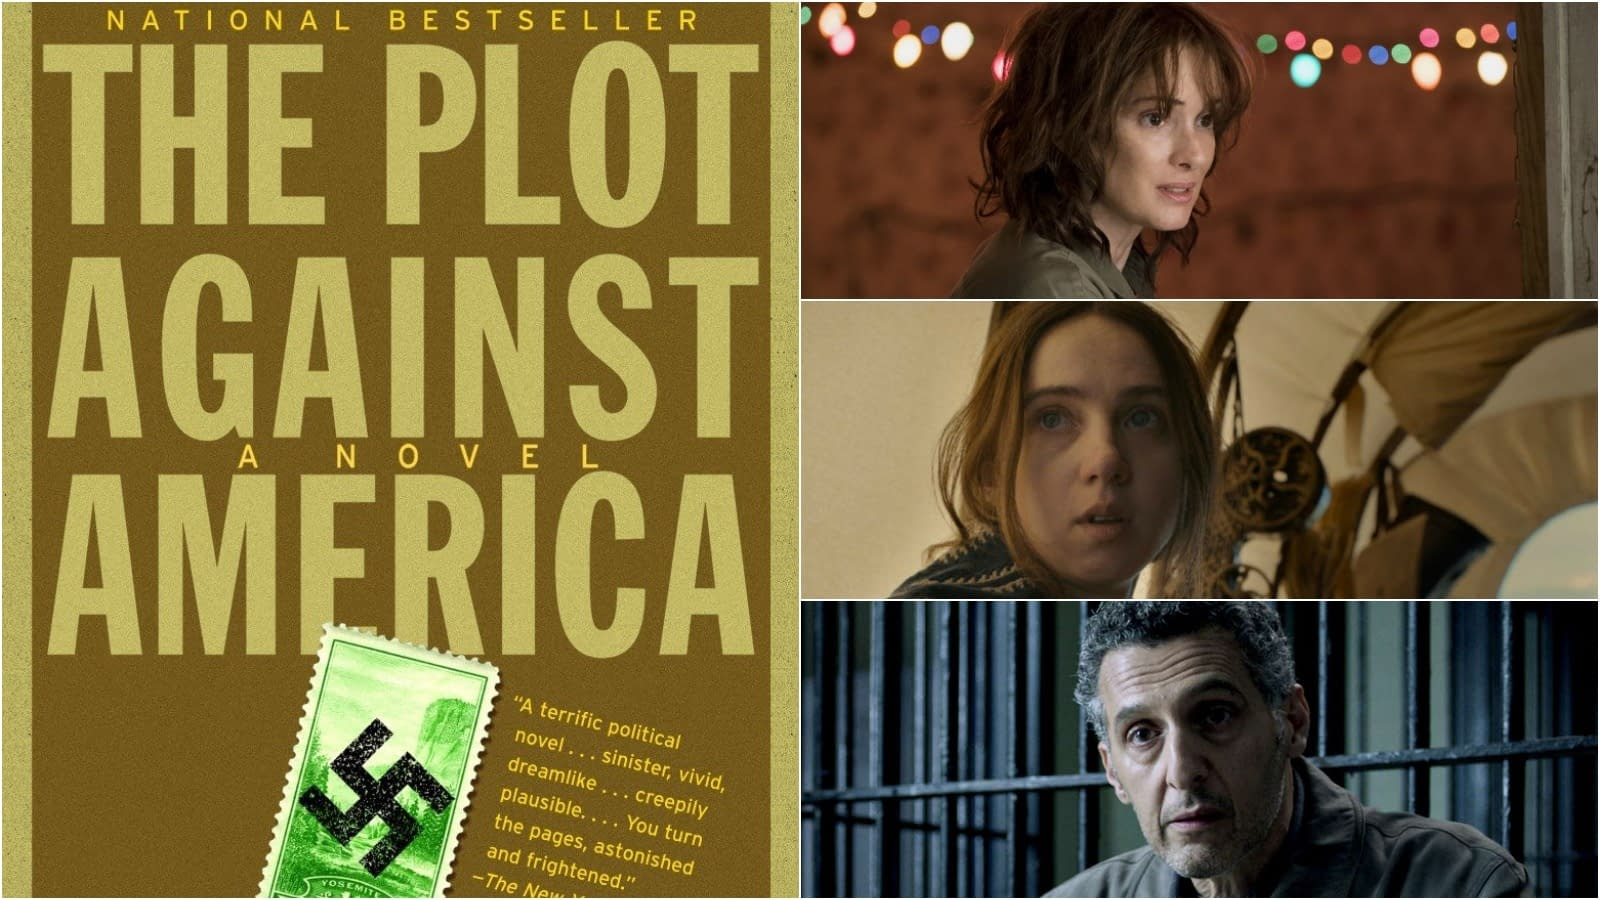 'The Plot Against America': Winona Ryder, Zoe Kazan, John Turturro, 4 More Join HBO Miniseries